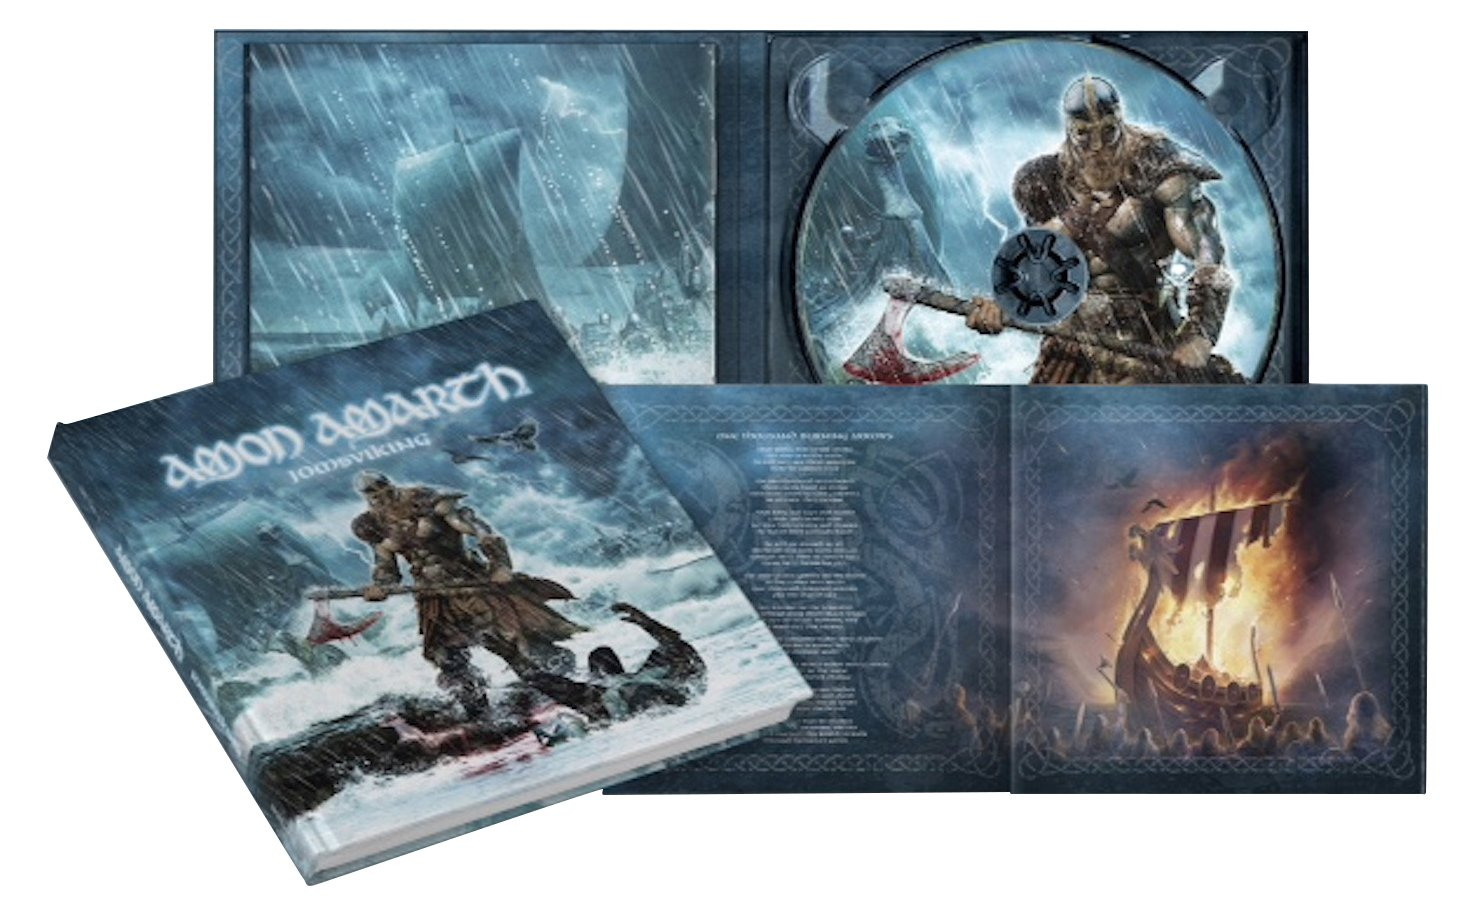 CD : Amon Amarth - Jomsviking (Deluxe Edition, Digibook Packaging)